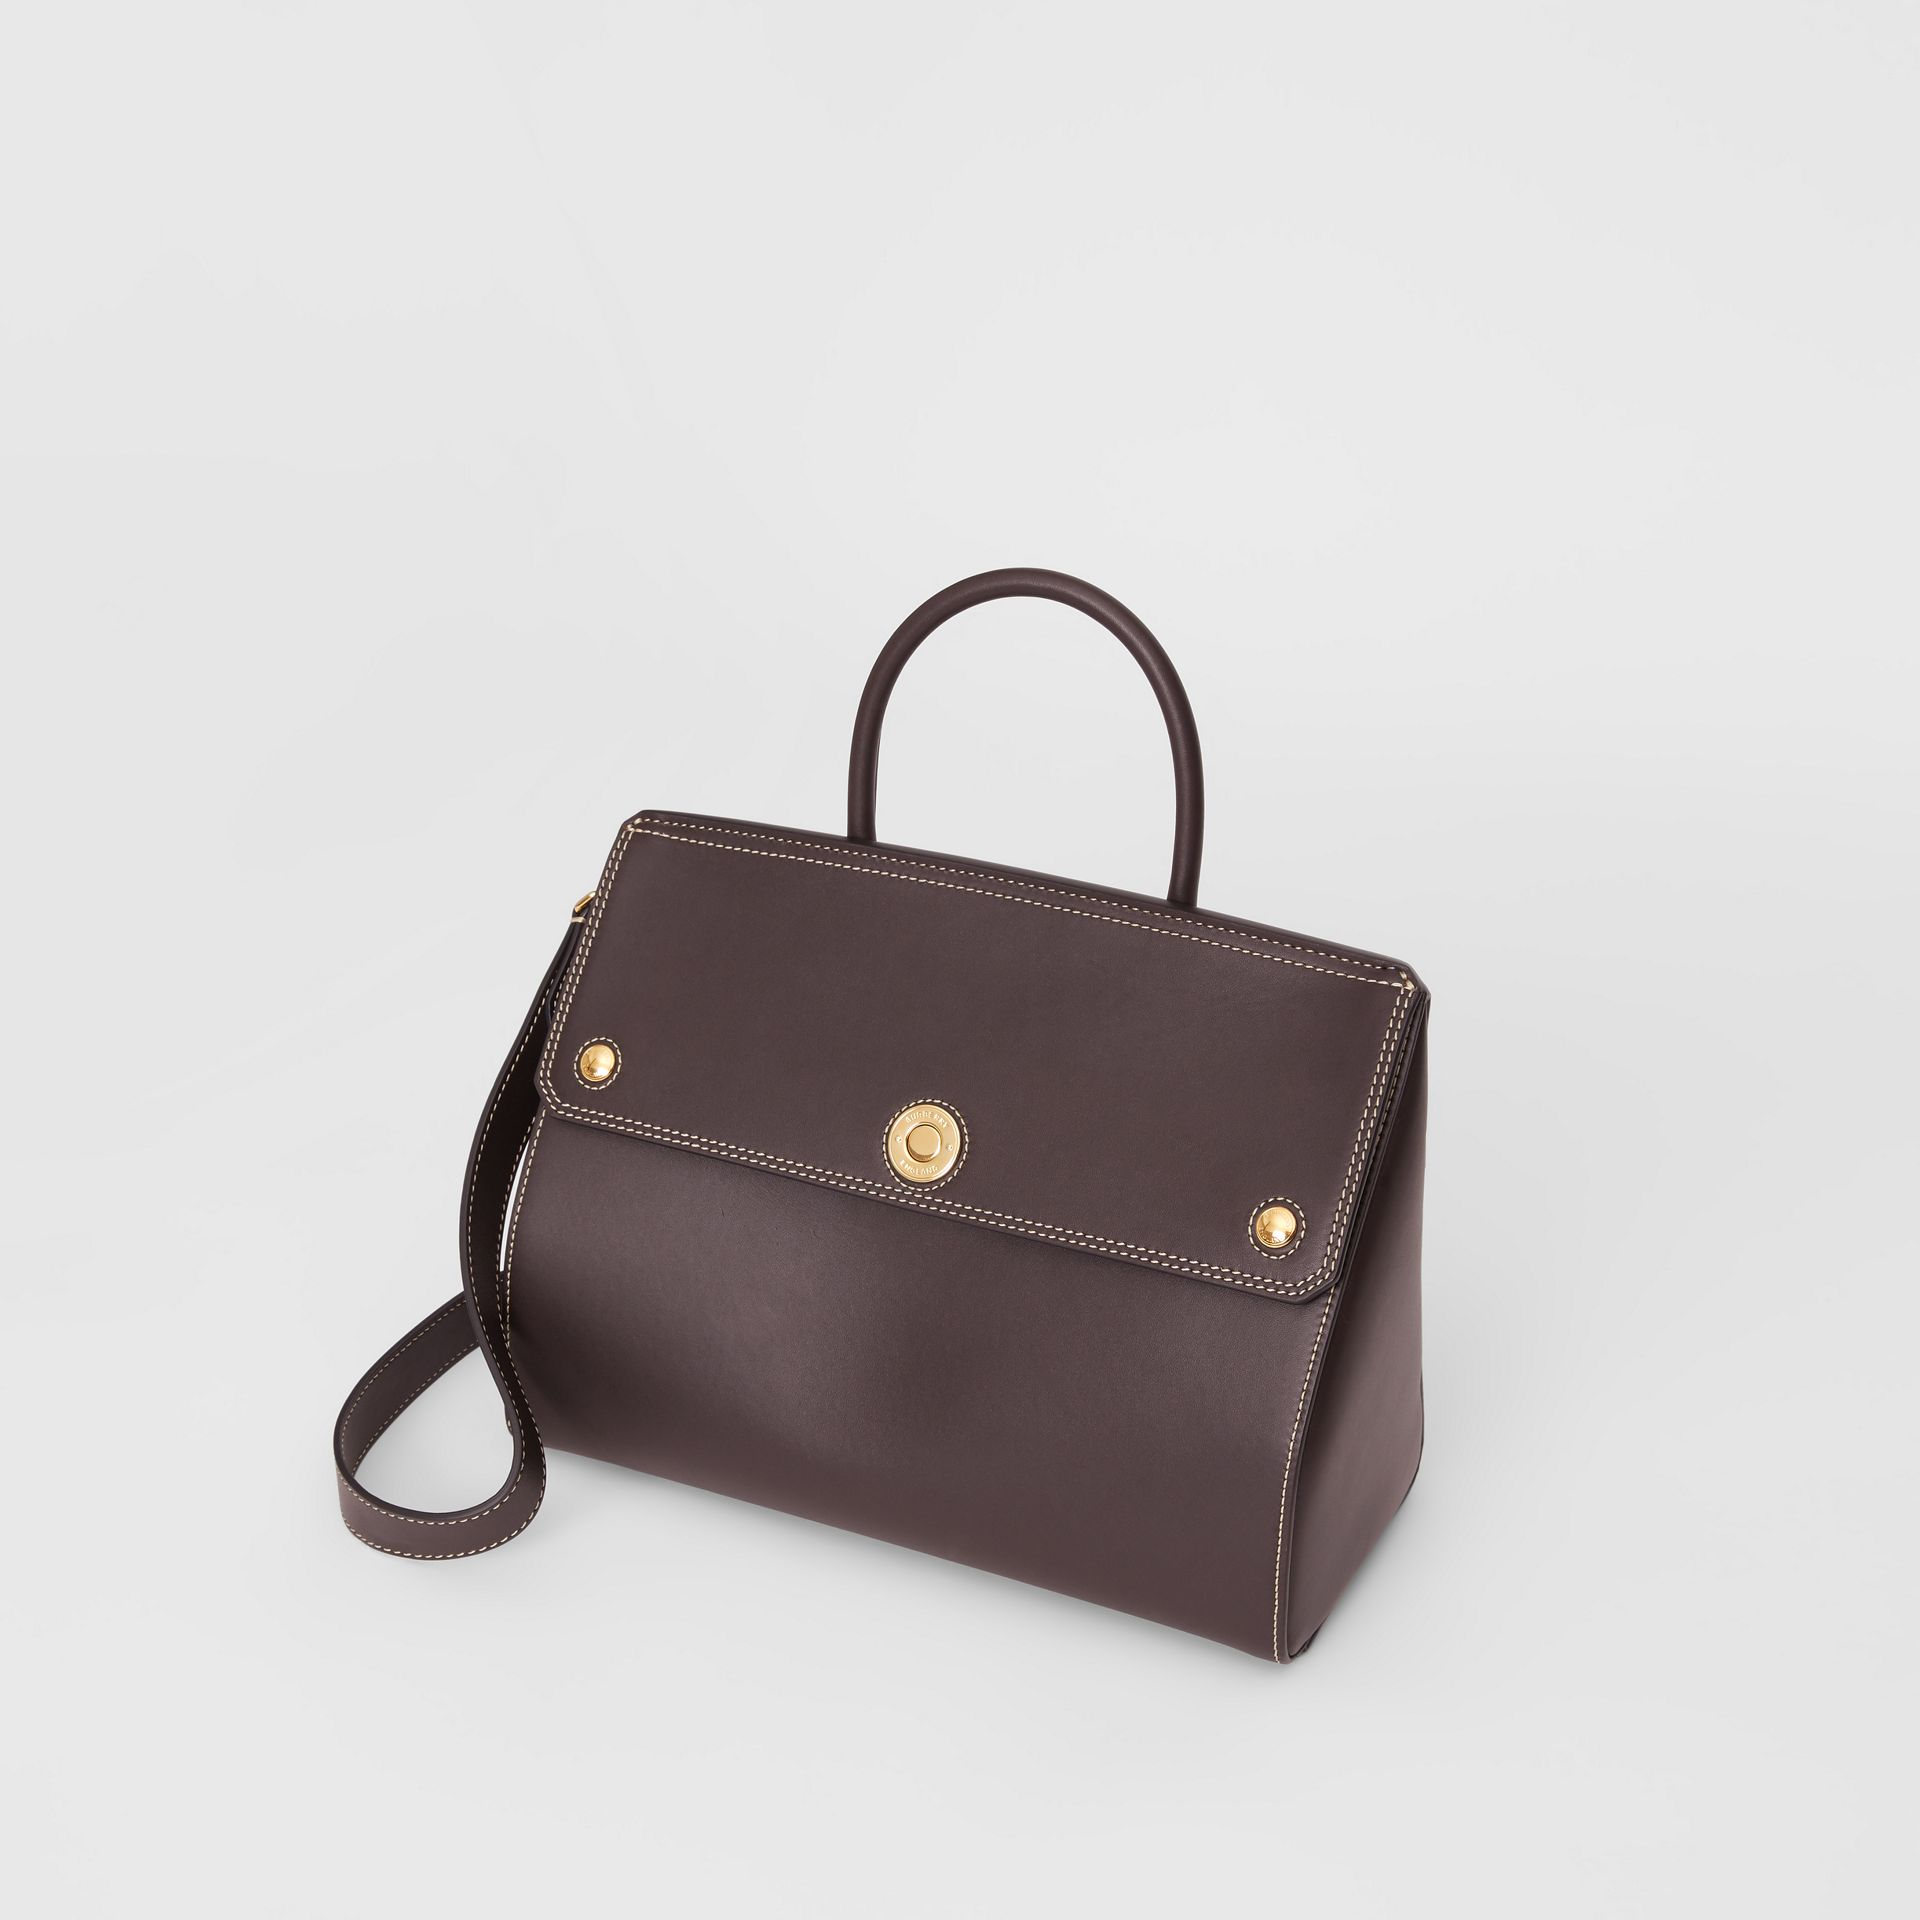 Small Leather Elizabeth Bag in Coffee - Women | Burberry United Kingdom - gallery image 3